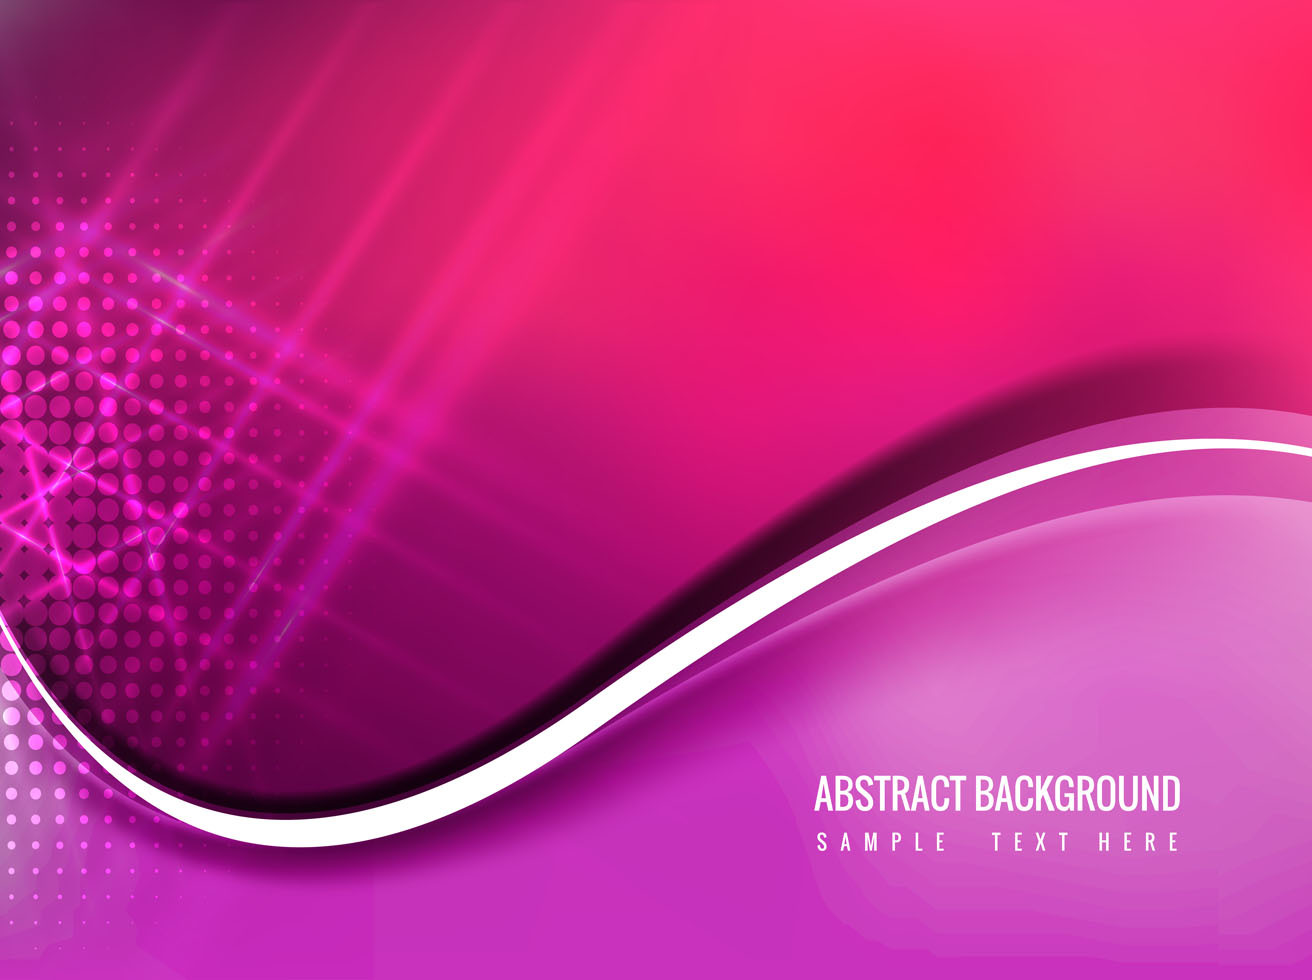 Colorful abstract design background vector art free vector - Free Vector Pink Color Abstract Background